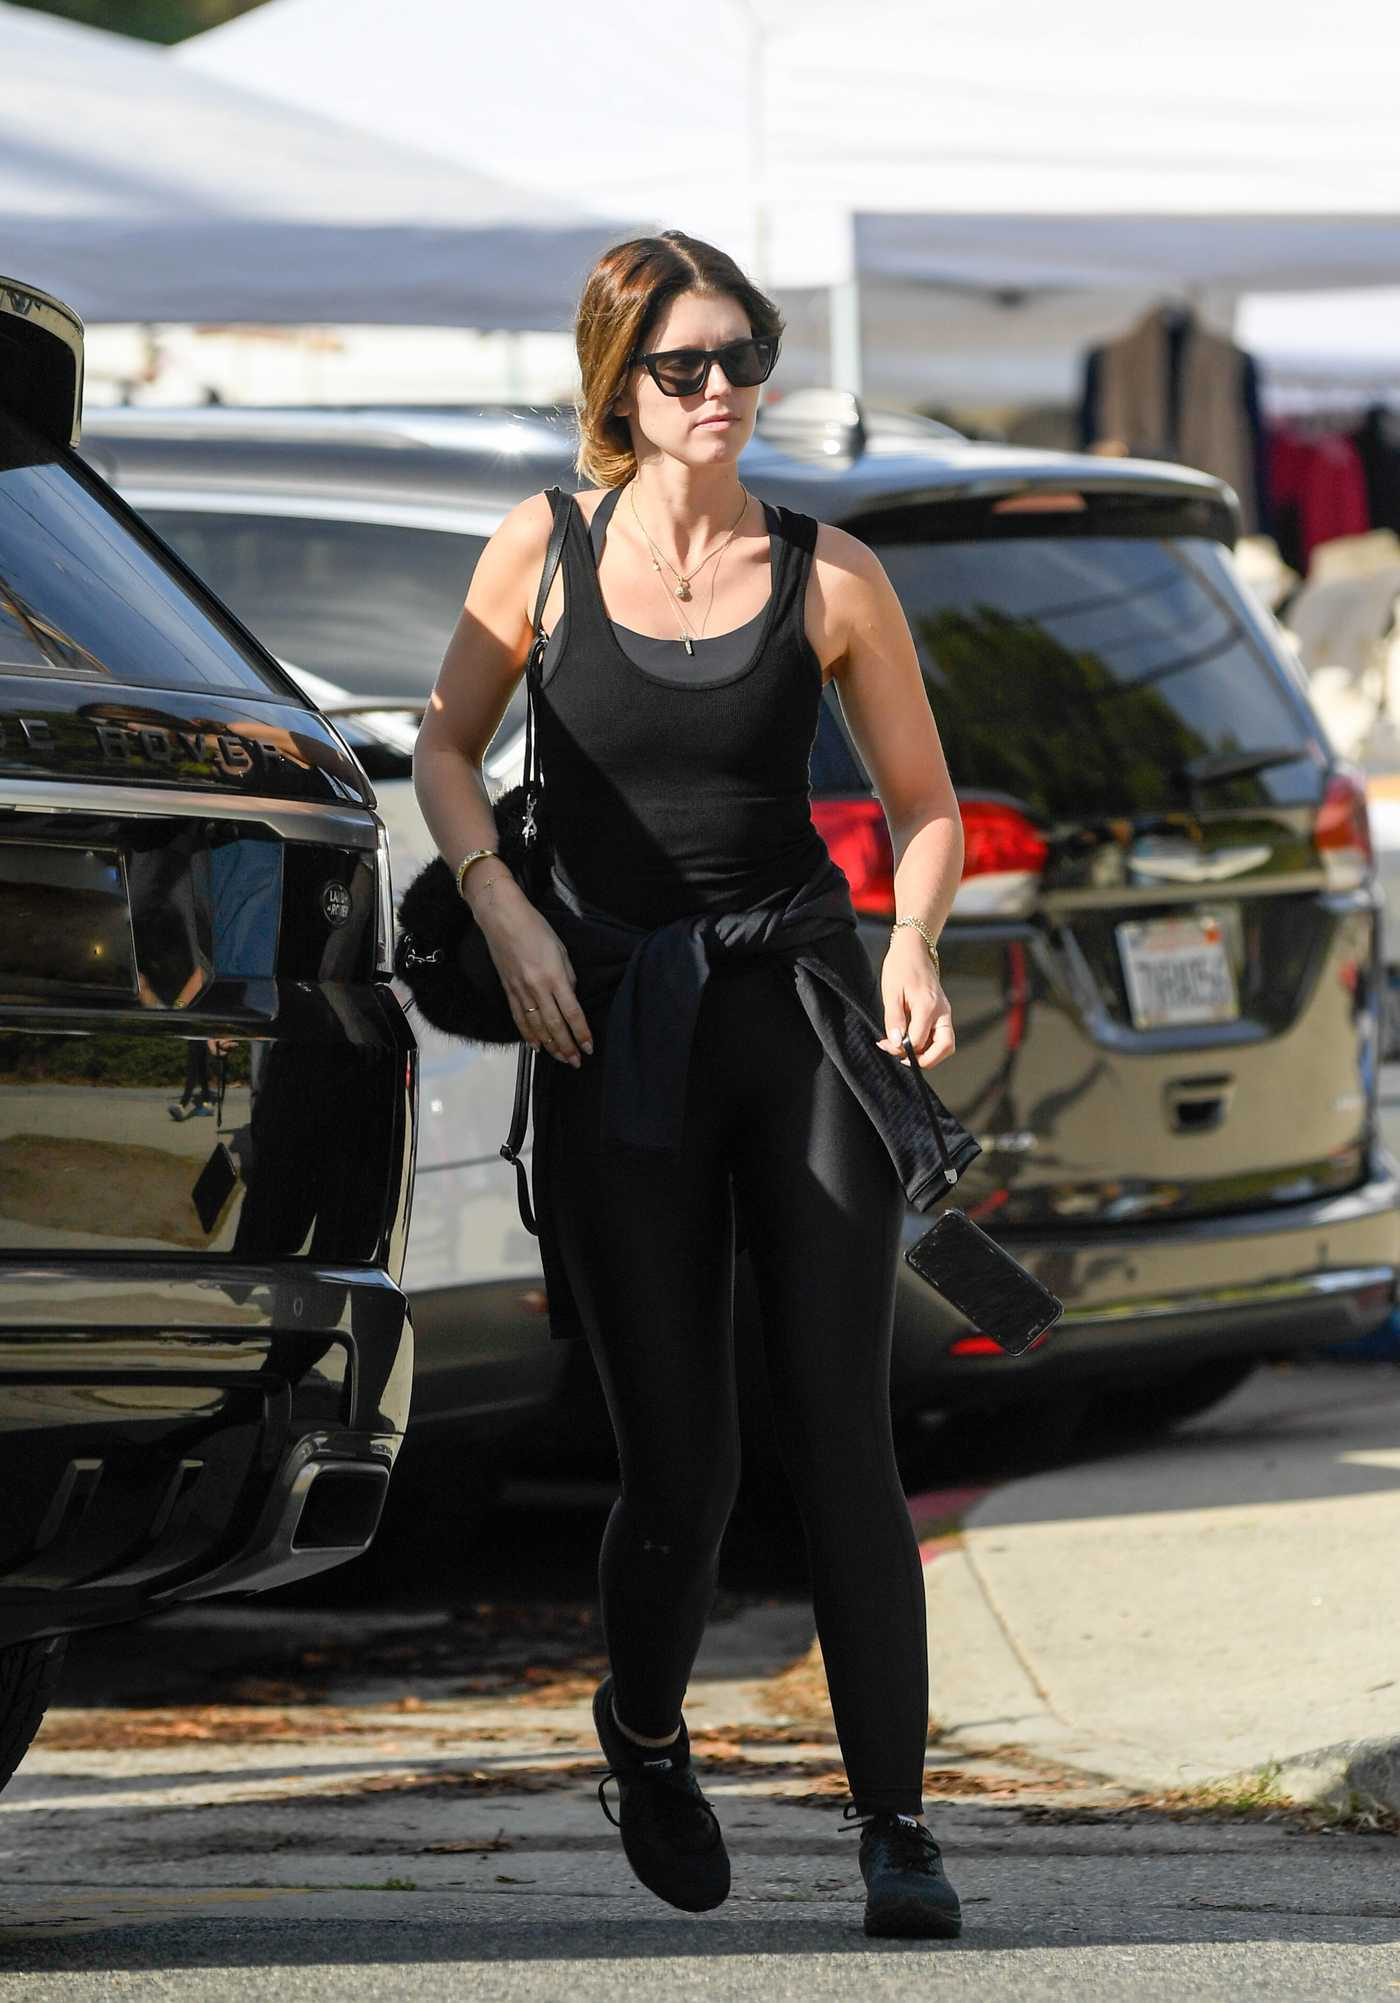 Katherine Schwarzenegger in a Black Tank Top Was Seen Out in Brentwood 12/26/2018